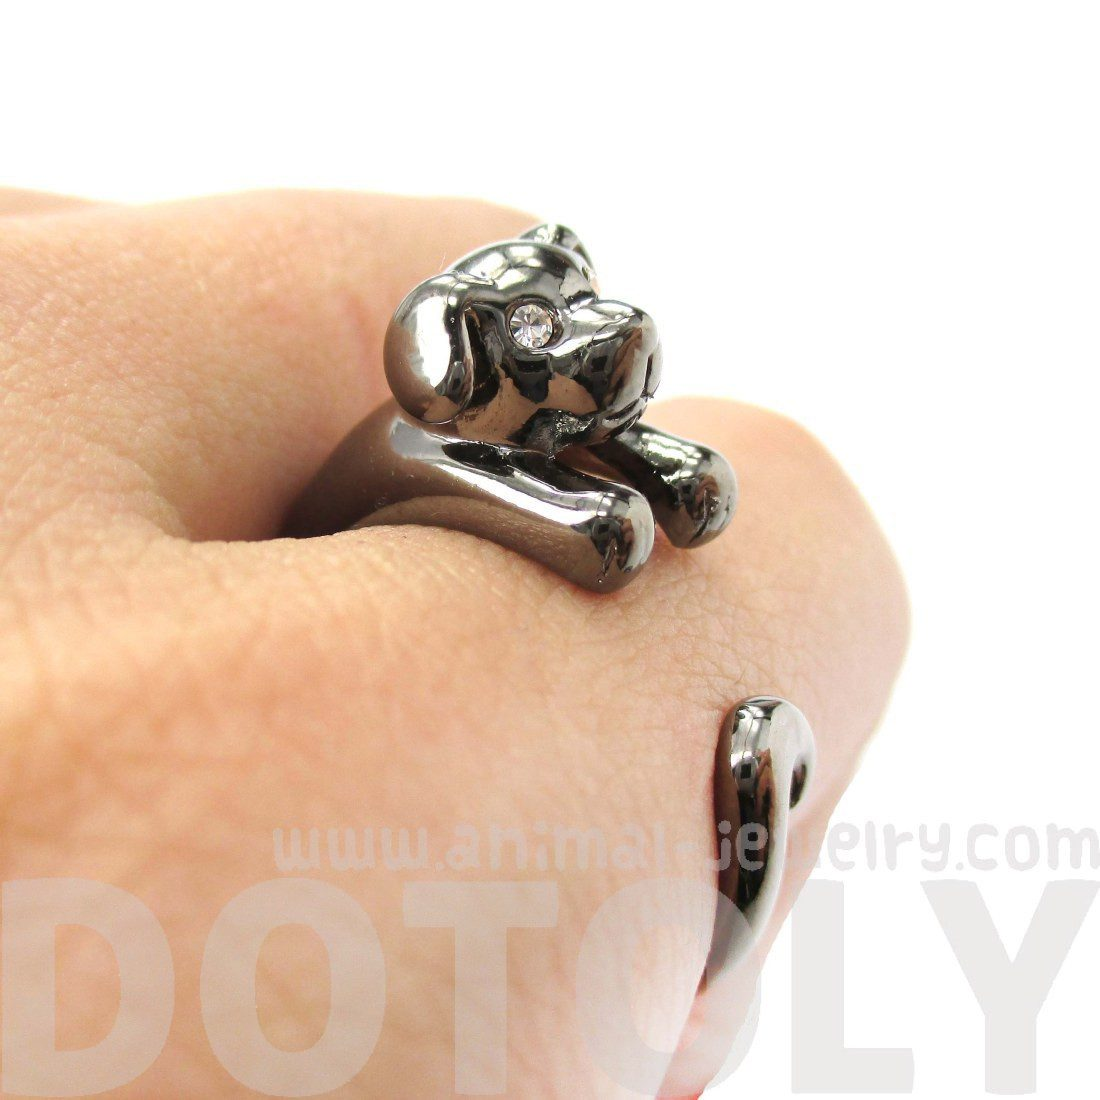 Adorable Puppy Dog Shaped Animal Wrap Around Ring in Gunmetal Silver